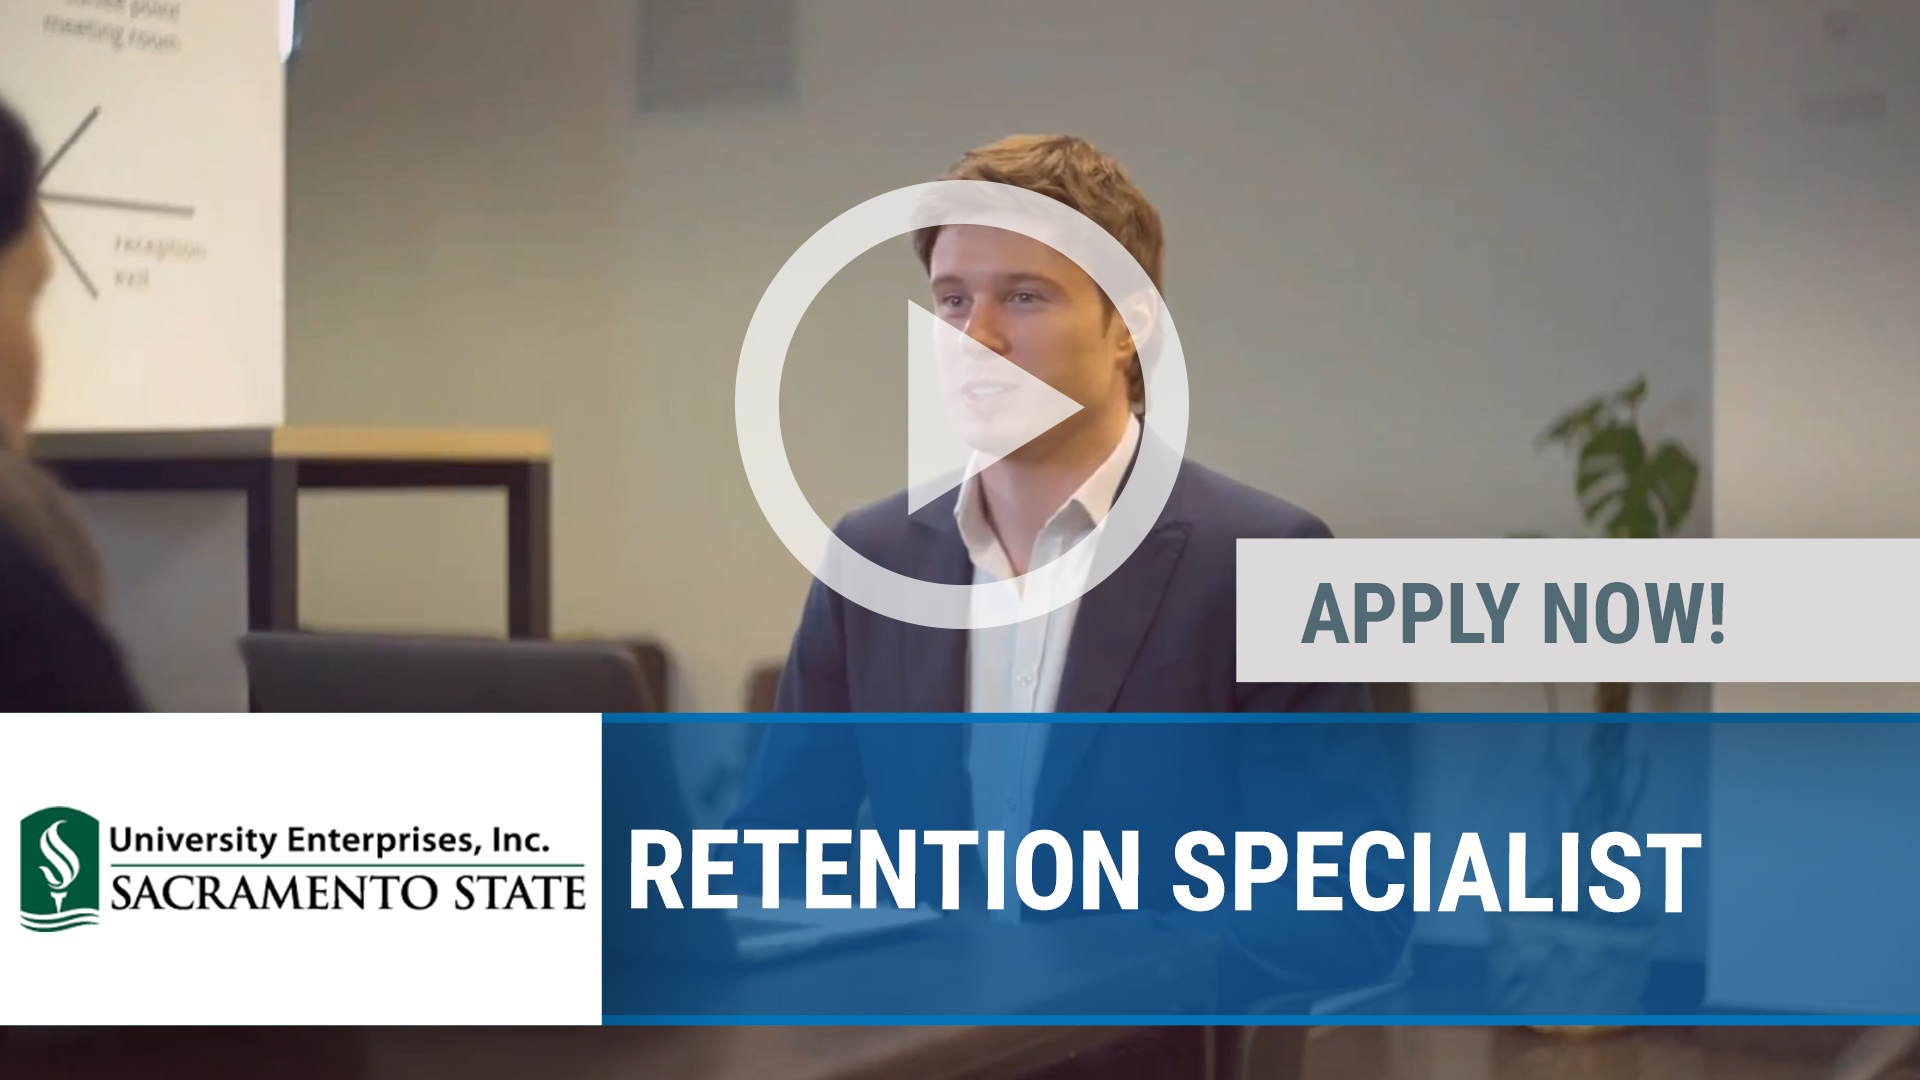 Watch our careers video for available job opening RETENTION SPECIALIST in SACRAMENTO, CA